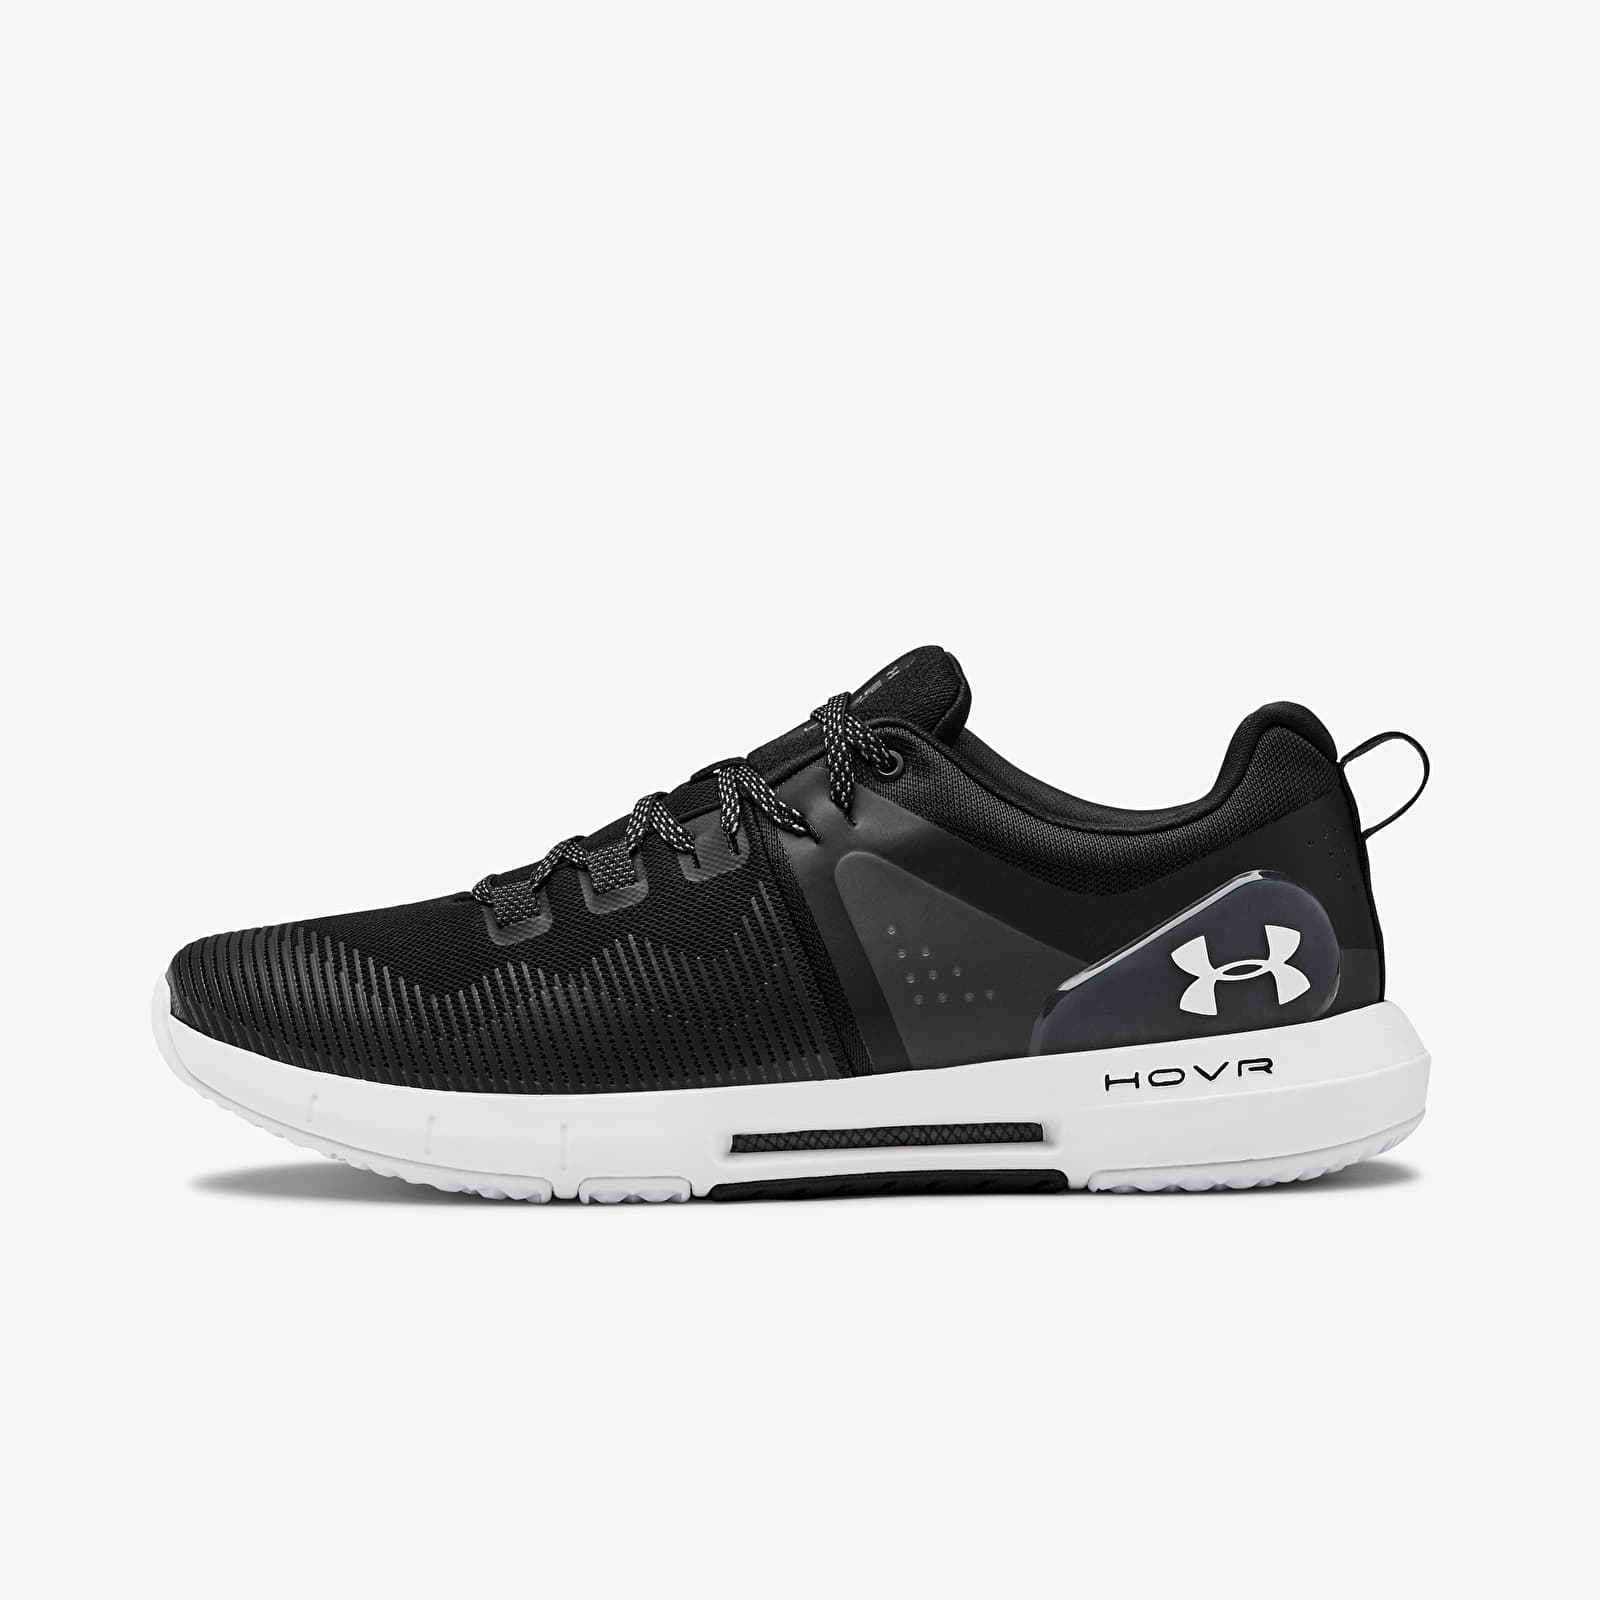 Ανδρικά παπούτσια Under Armour HOVR Rise Black/ White/ White